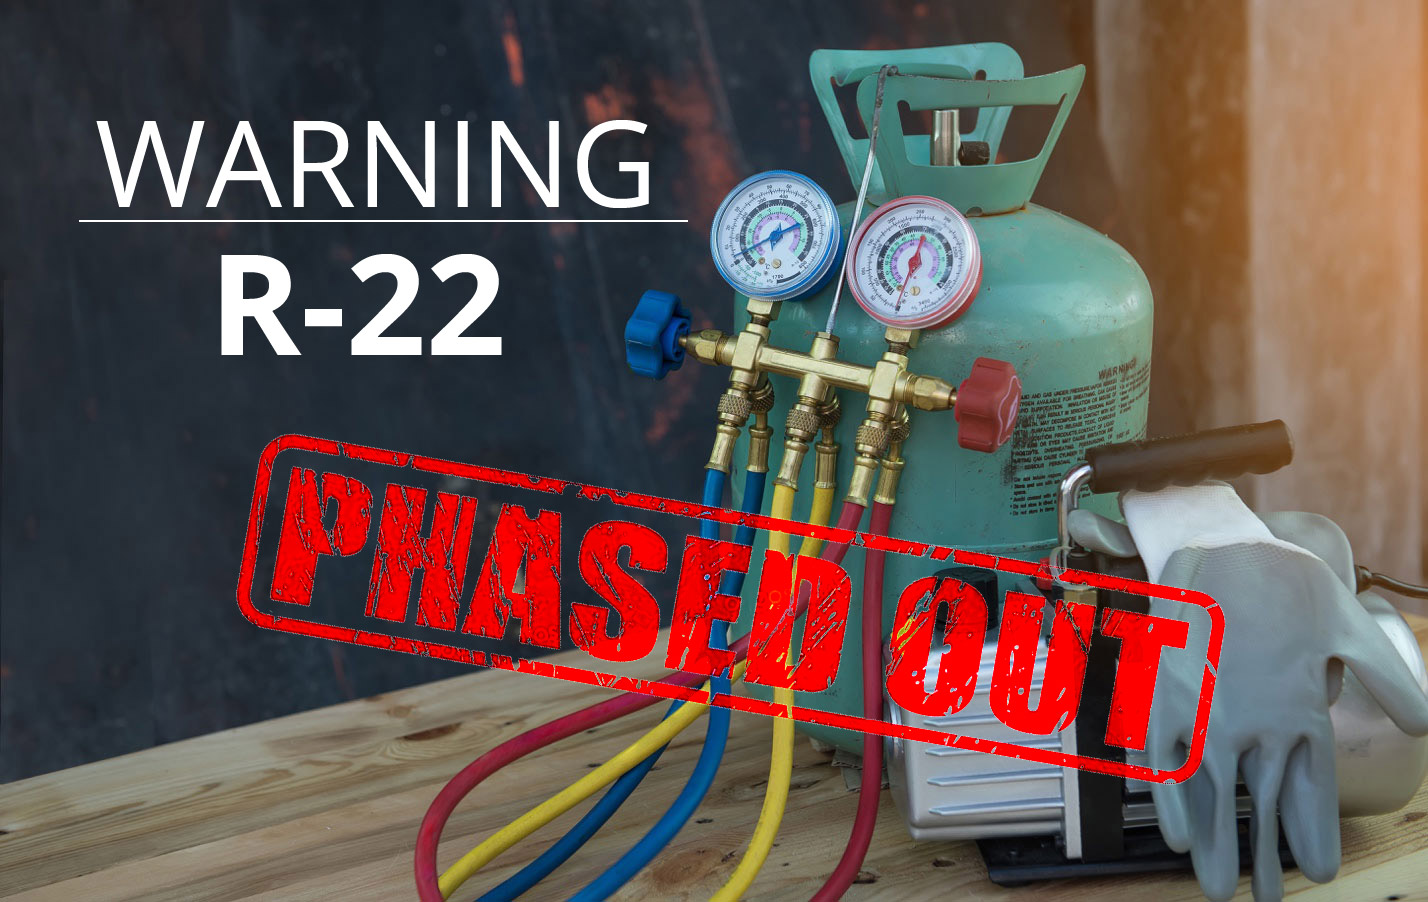 R-22 Freon Phased Out Worldwide - January 1st, 2020